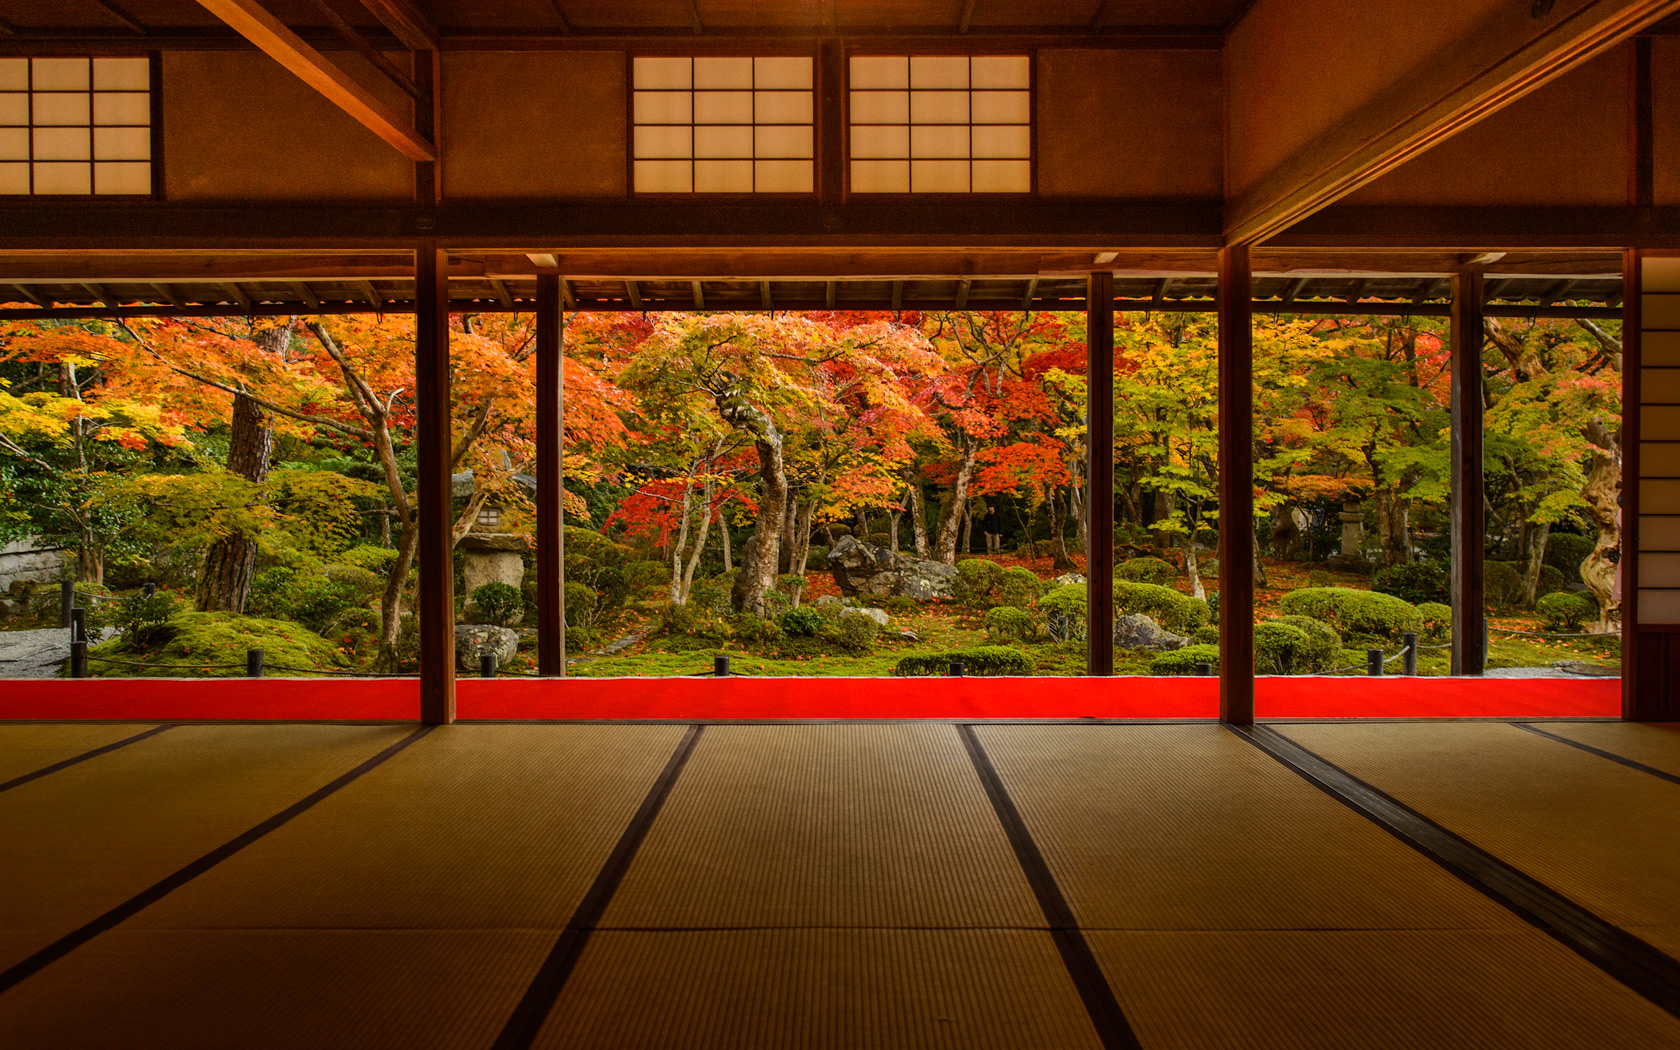 3d Landescape Mural Wallpaper Jeffrey Friedl S Blog 187 Impossible Shot At Kyoto S Enkoji